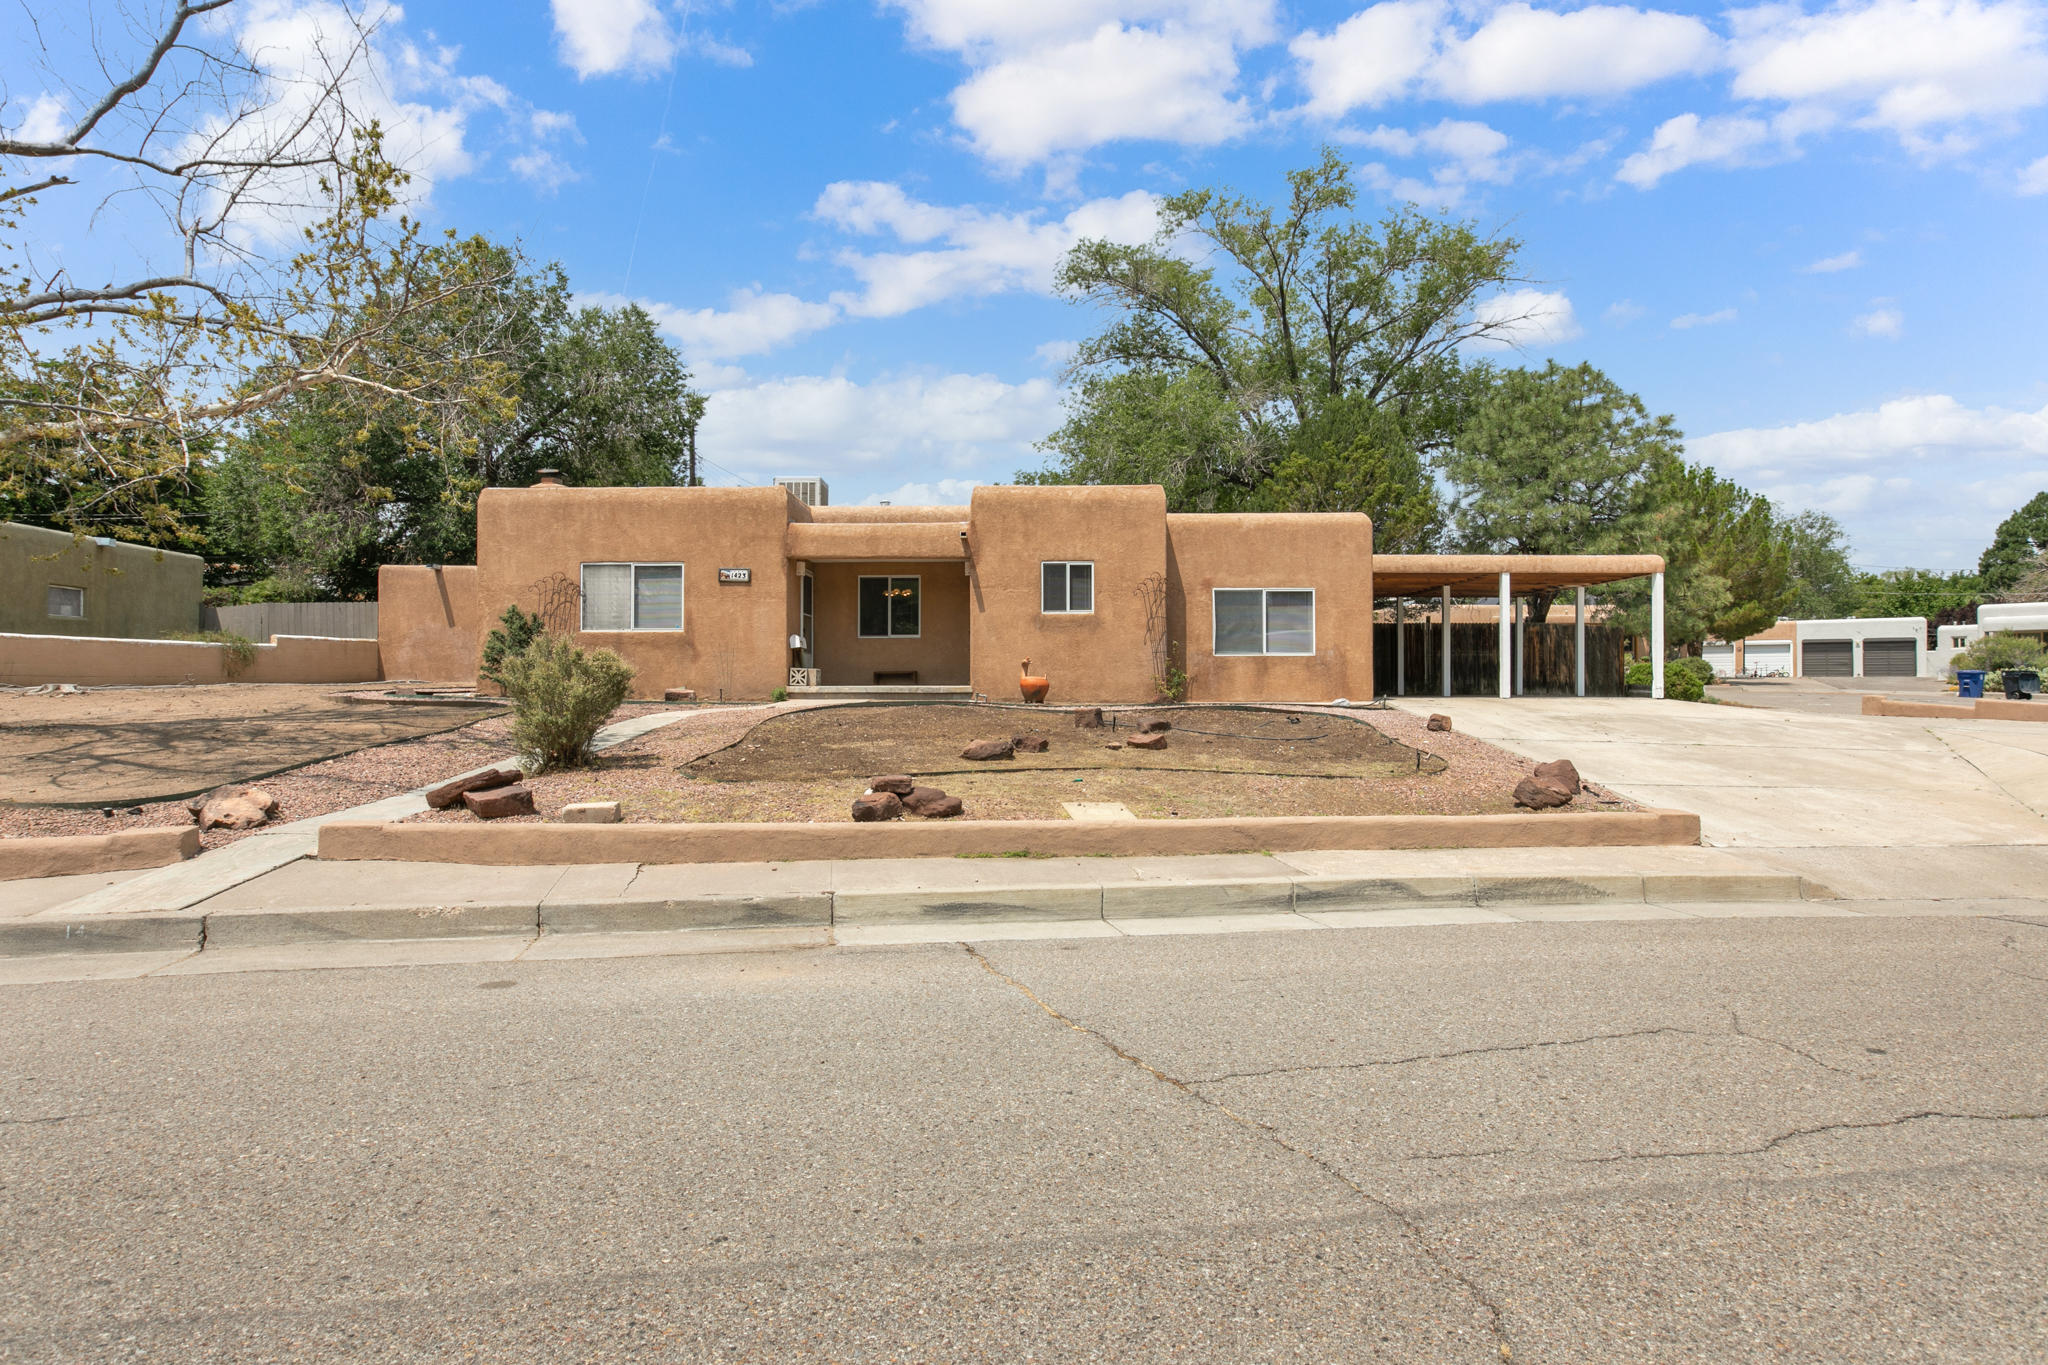 Single story charmer near UNM North Campus is awaiting its new owner. The 4 bedroom property offers beautiful floors; wood, parquet & tile! Amenities include; roof replacement on the house in 2020,updated windows,alarm,two evaporative coolers,two furnaces, two wall heaters and a fireplace. The living area & dining room flow together and offer a spacious area to entertain in. The eat in kitchen offers solid surface countertops,double ovens,cooktop stove,dishwasher and refrigerator conveys with an acceptable offer. The master bedroom is privately tucked away and it is generous in size.The fourth bedroom can easily be used as a bedroom,second living space,office or studio.  You're sure to enjoy the private courtyard area and large back yard that boasts a covered porch and raised garden area.